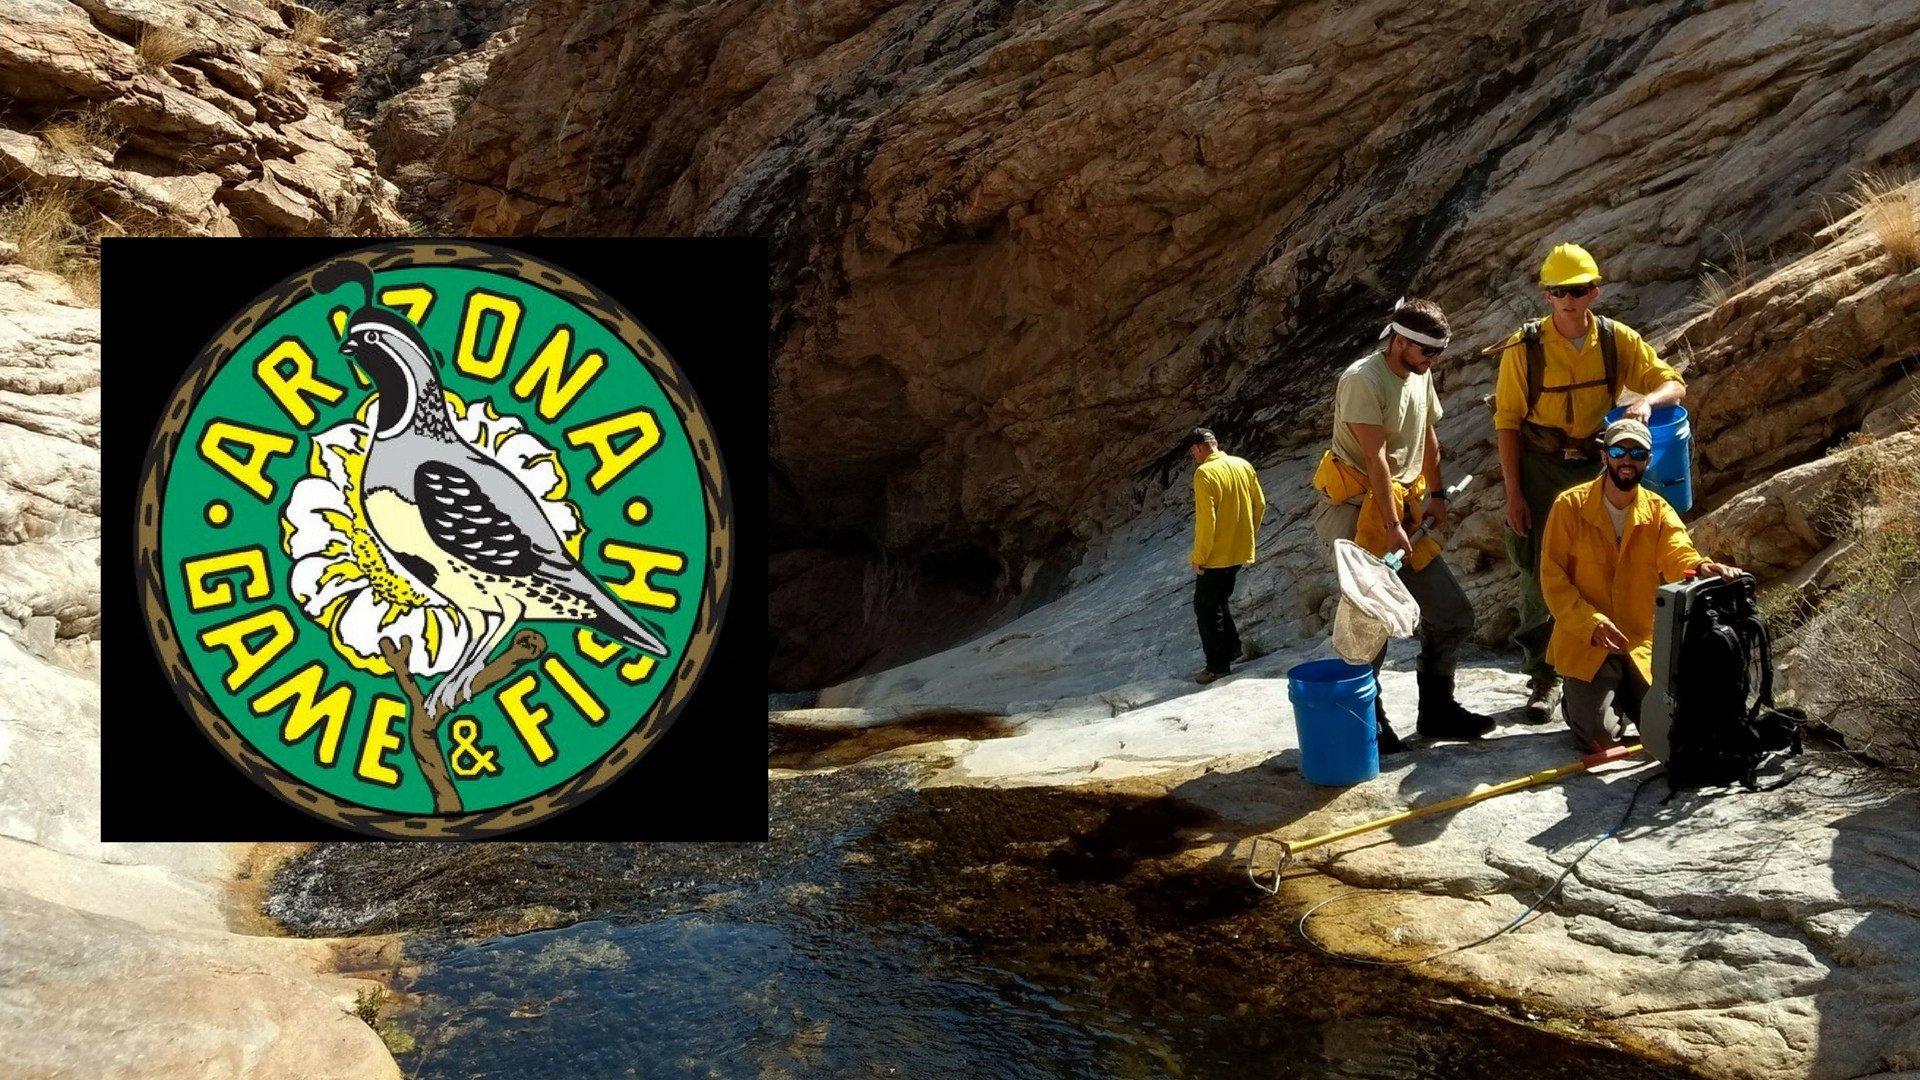 Fishing in the the Frye Creek has been suspended to allow population regrowth among Gila trout. (Source: Arizona Game and Fish Department)